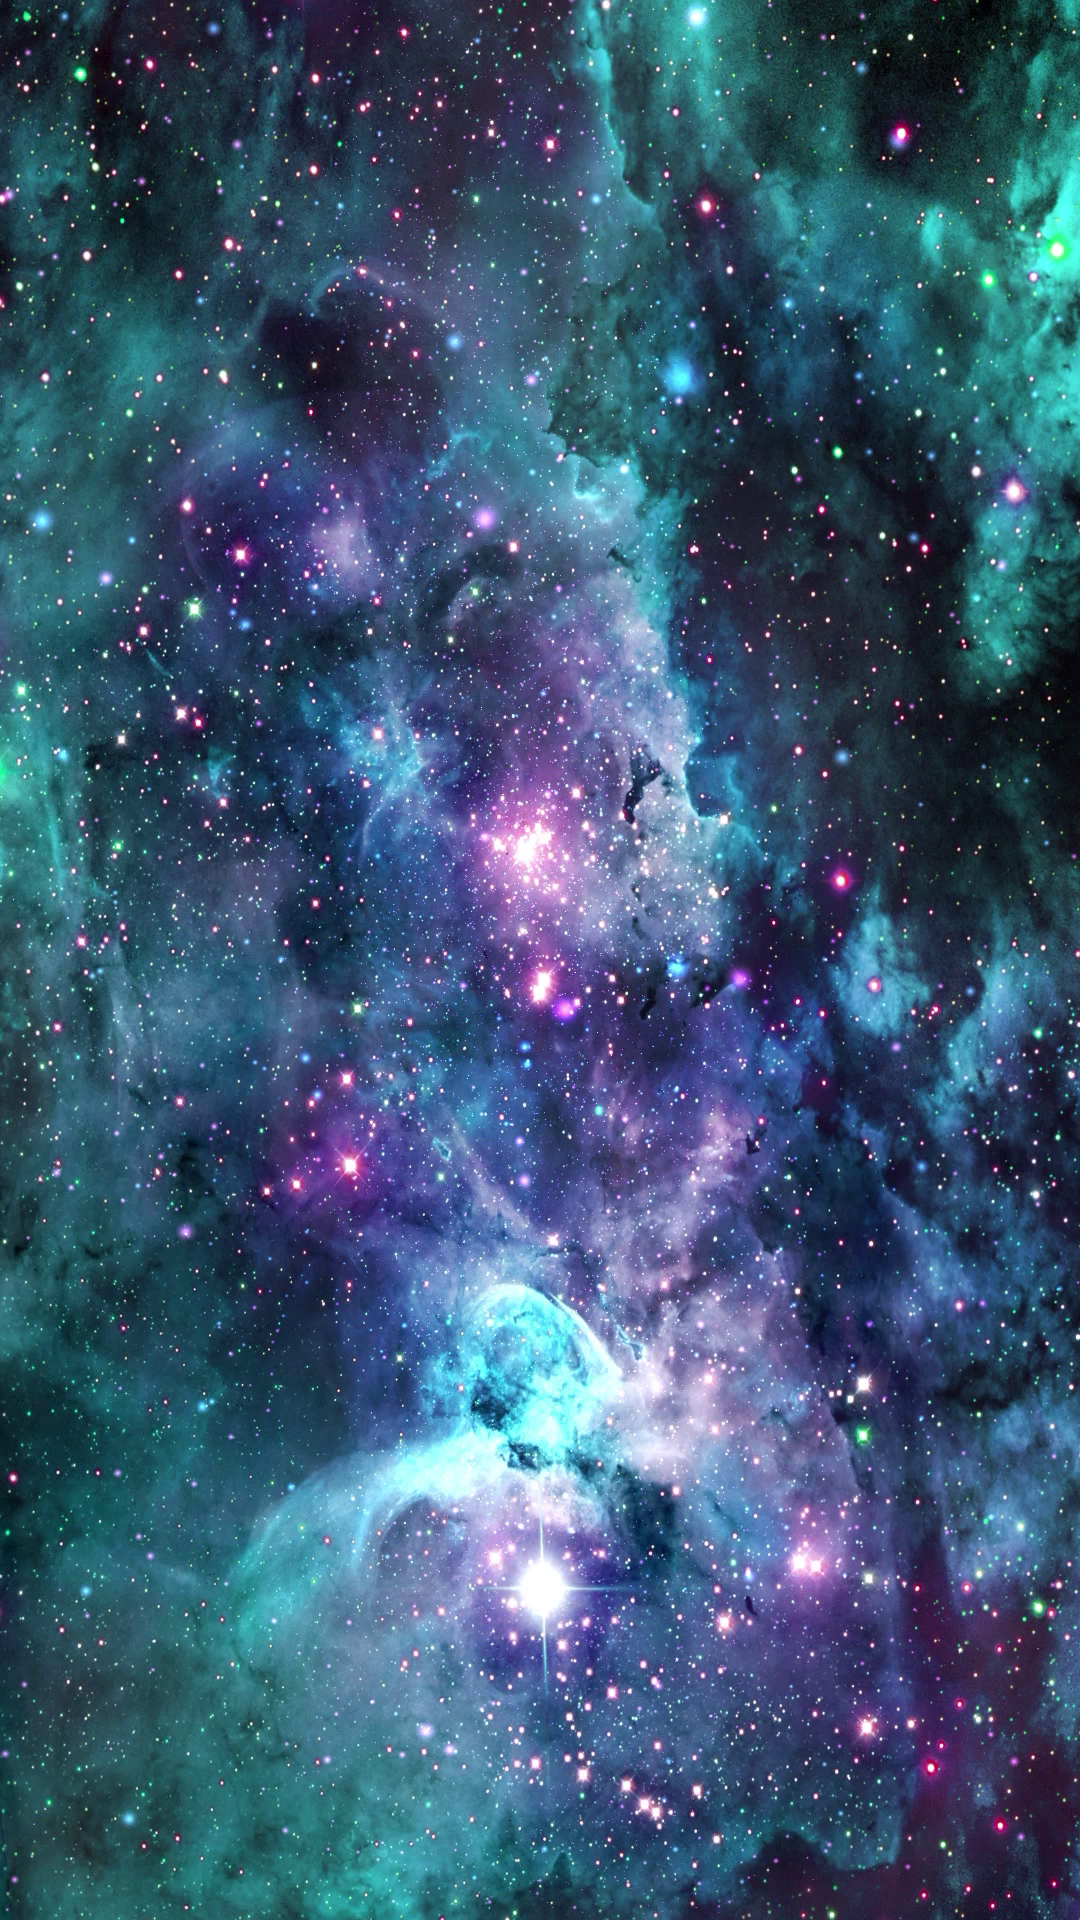 Galaxy 1080x1920 Live Wallpaper In Comments I Redd It Submitted By Livewallpaper Io To R Iwallpape Space Iphone Wallpaper Wallpaper Space Galaxy Wallpaper